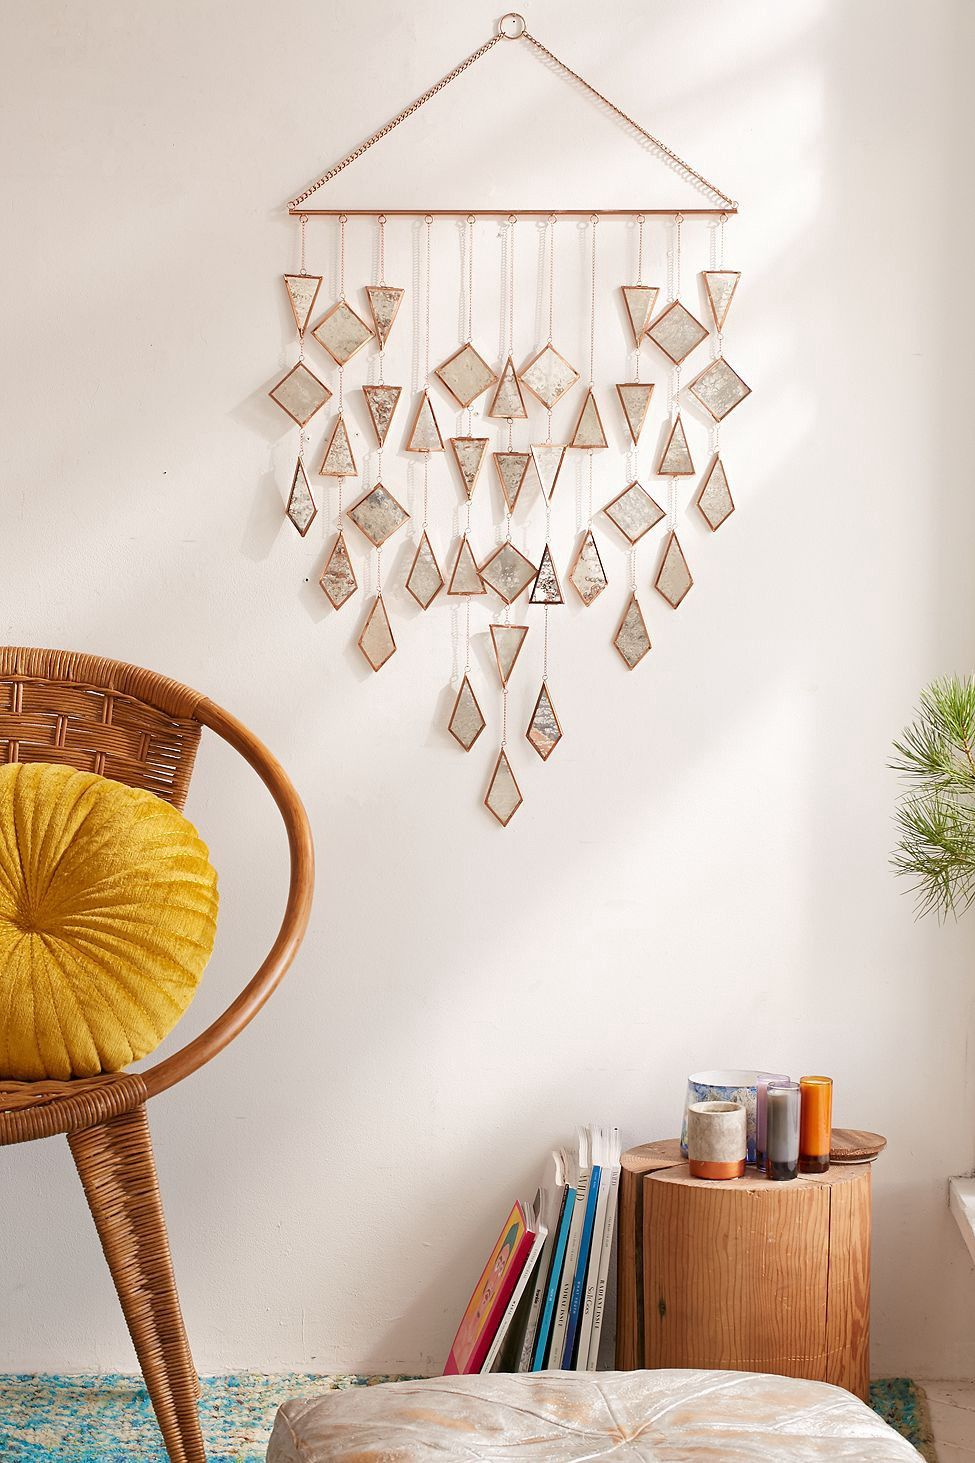 Urban Outfitters Selma Wall Hanging Copper One Size Hanging Wall Decor Diy Wall Decor Handmade Home